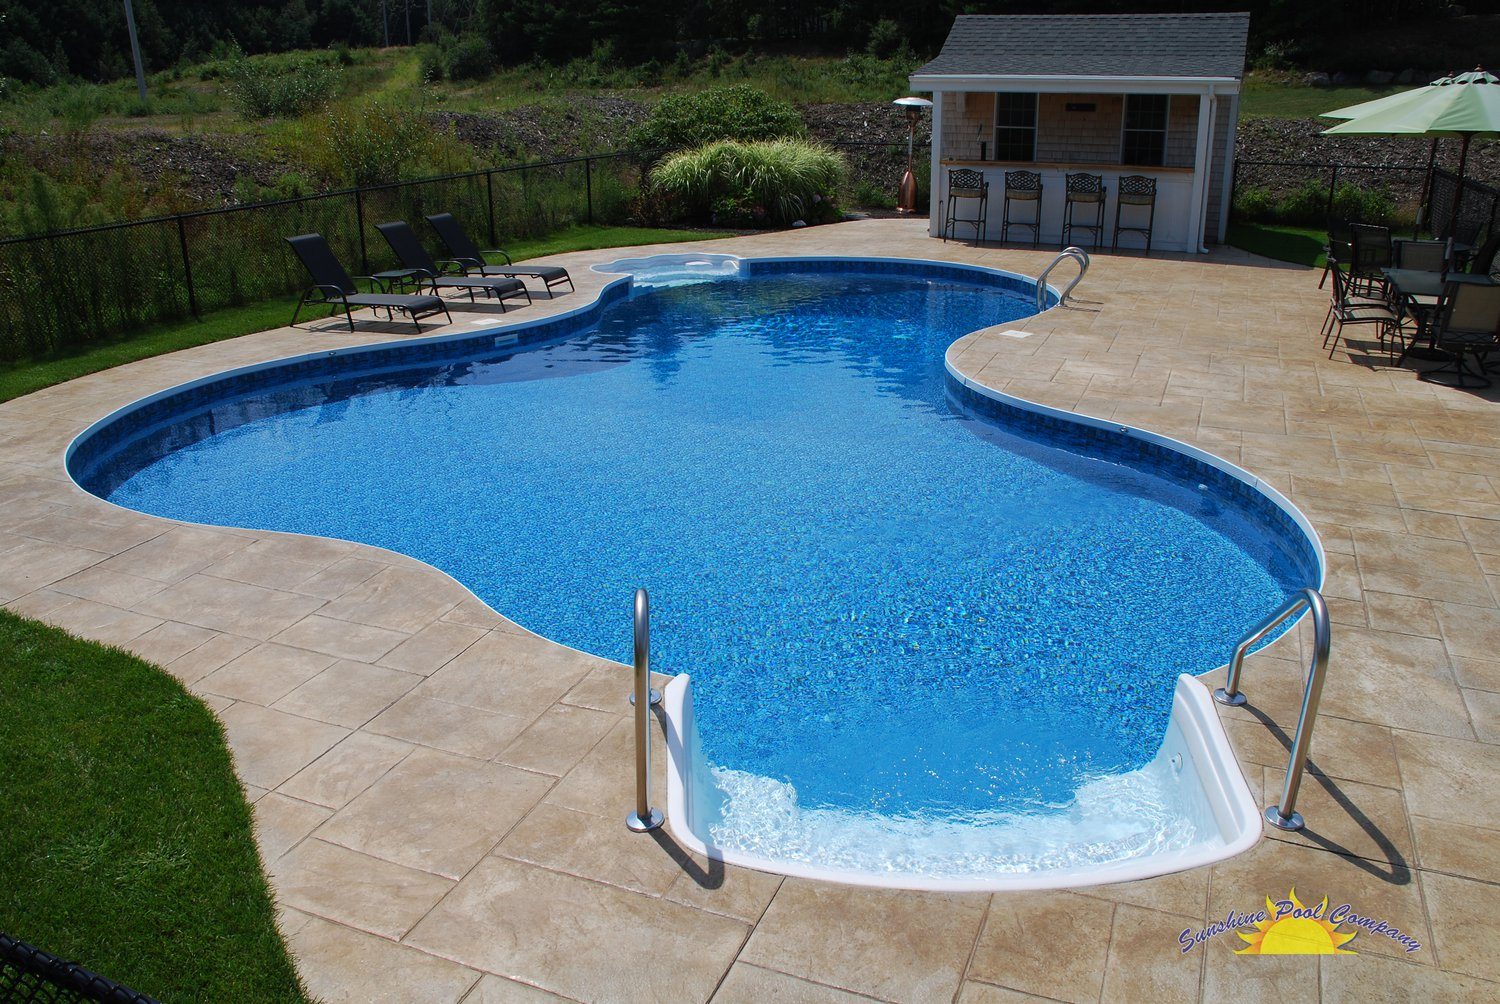 Sunshine pool company new pools in ground for Inground pool pics